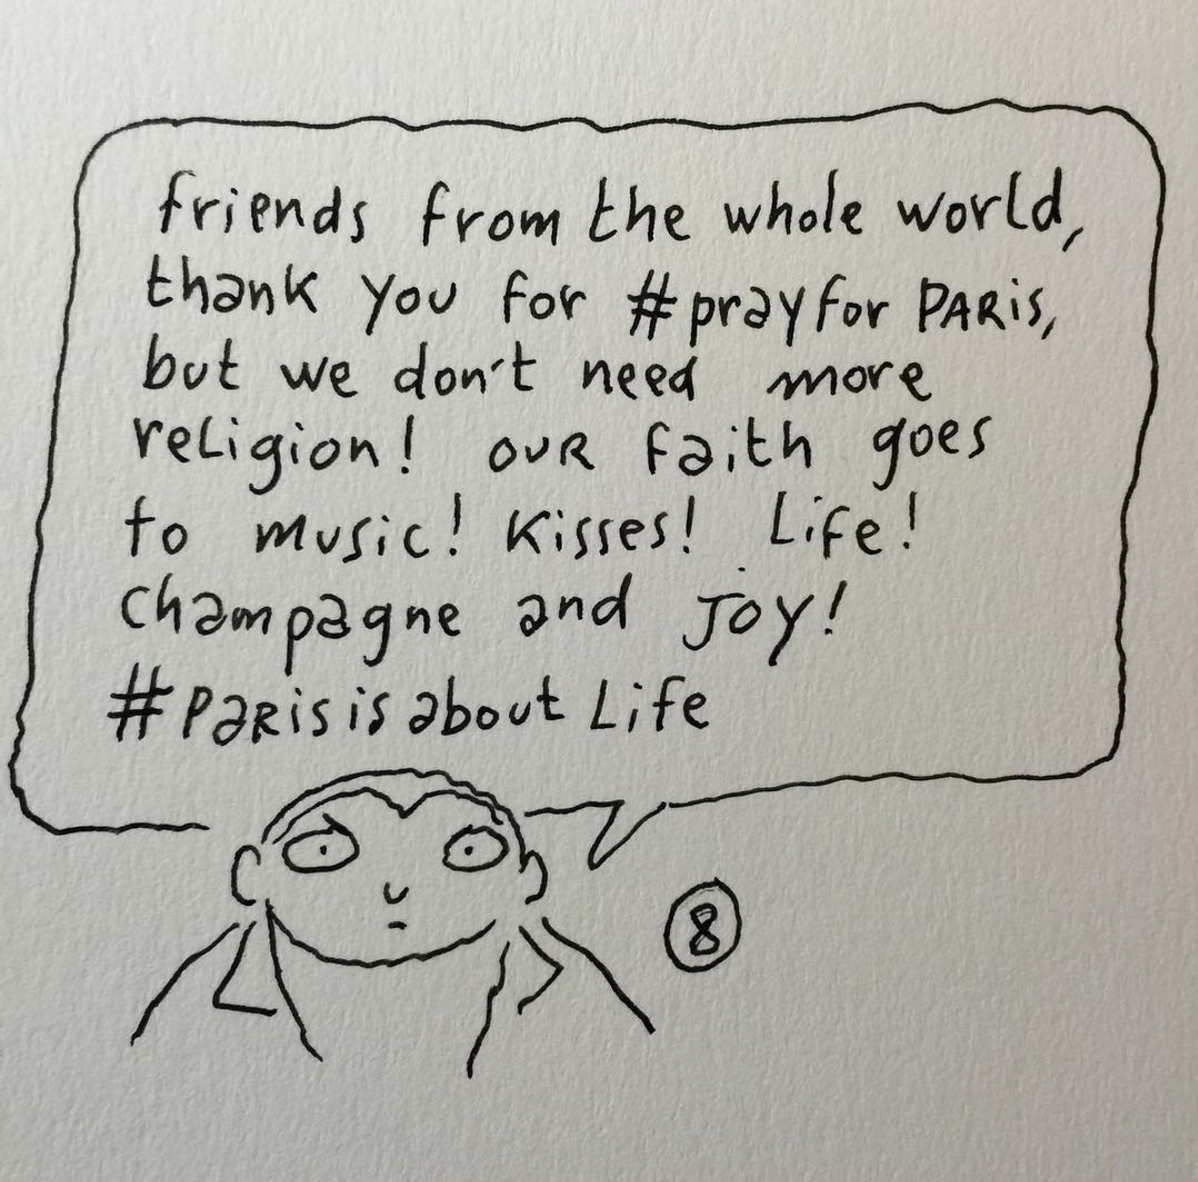 A response to the events in Paris from Charlie Hebdo cartoonist Joann Sfar.